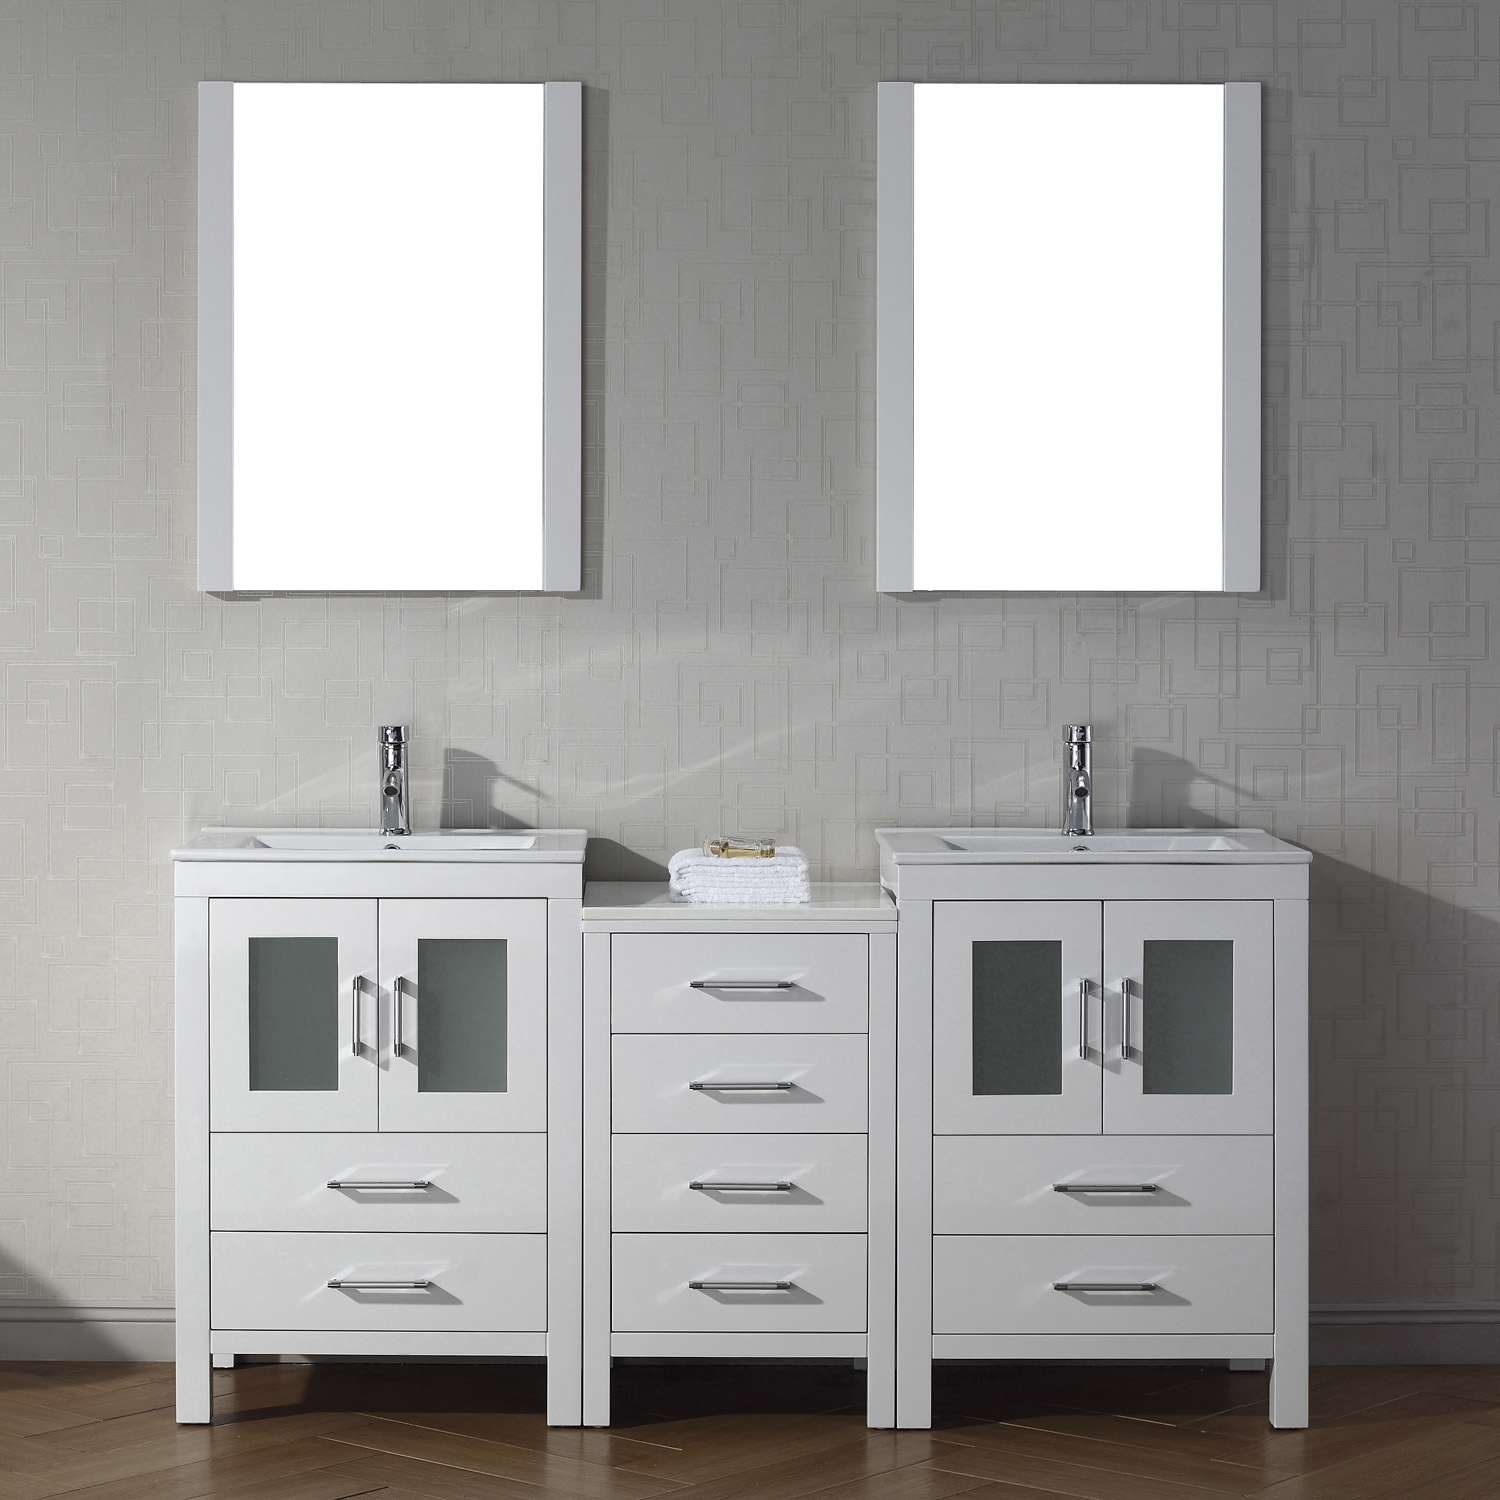 66 Double Bath Vanity In White With Slim White Ceramic Top And Square Sink With Polished Chrome Faucet And Mirrors